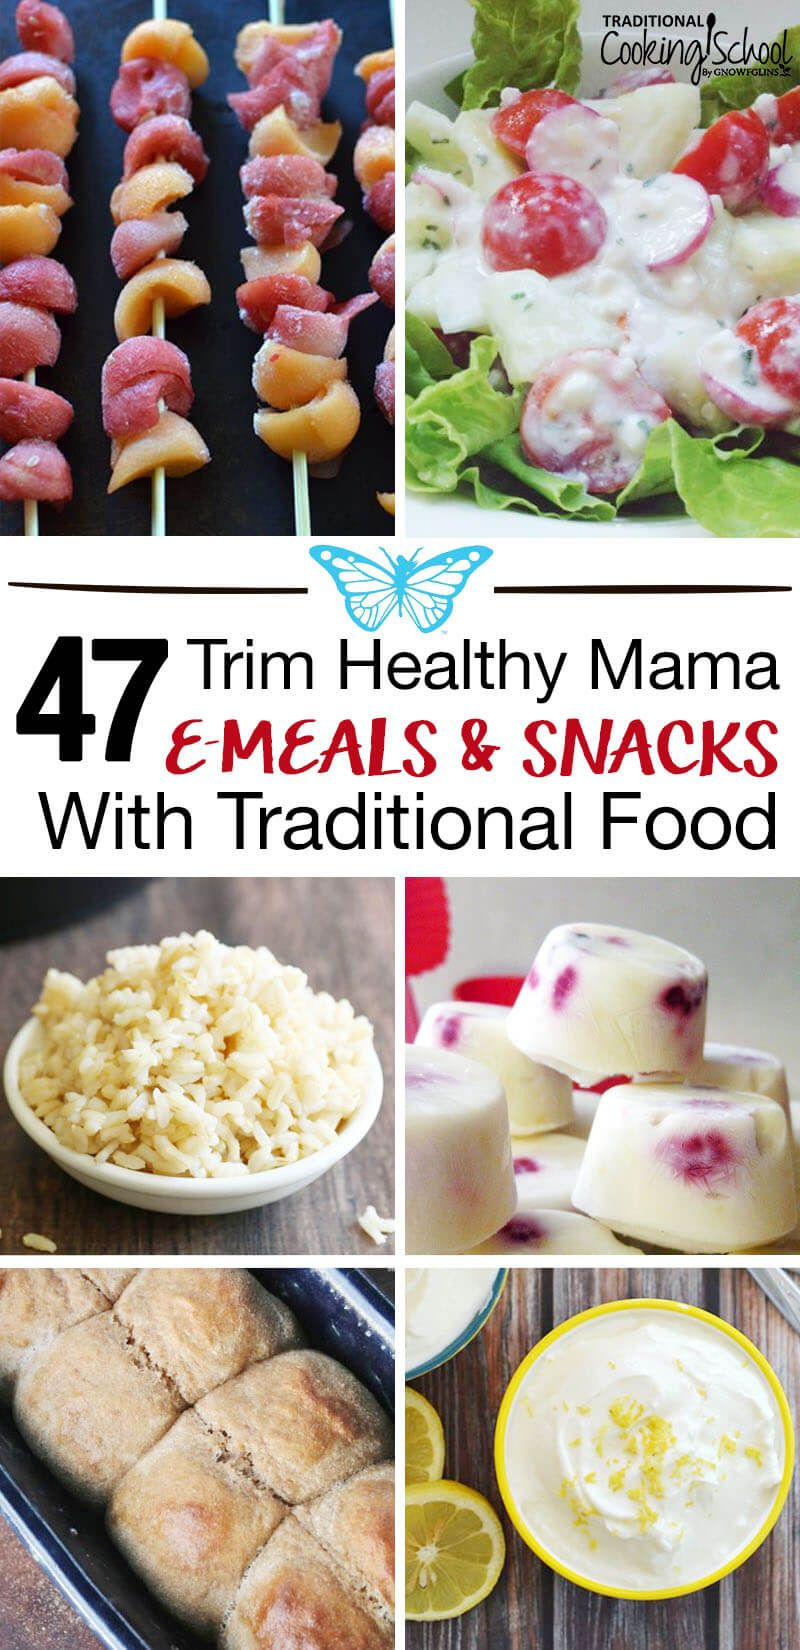 47 Trim Healthy Mama E Meals & Snacks With Traditional Foods images